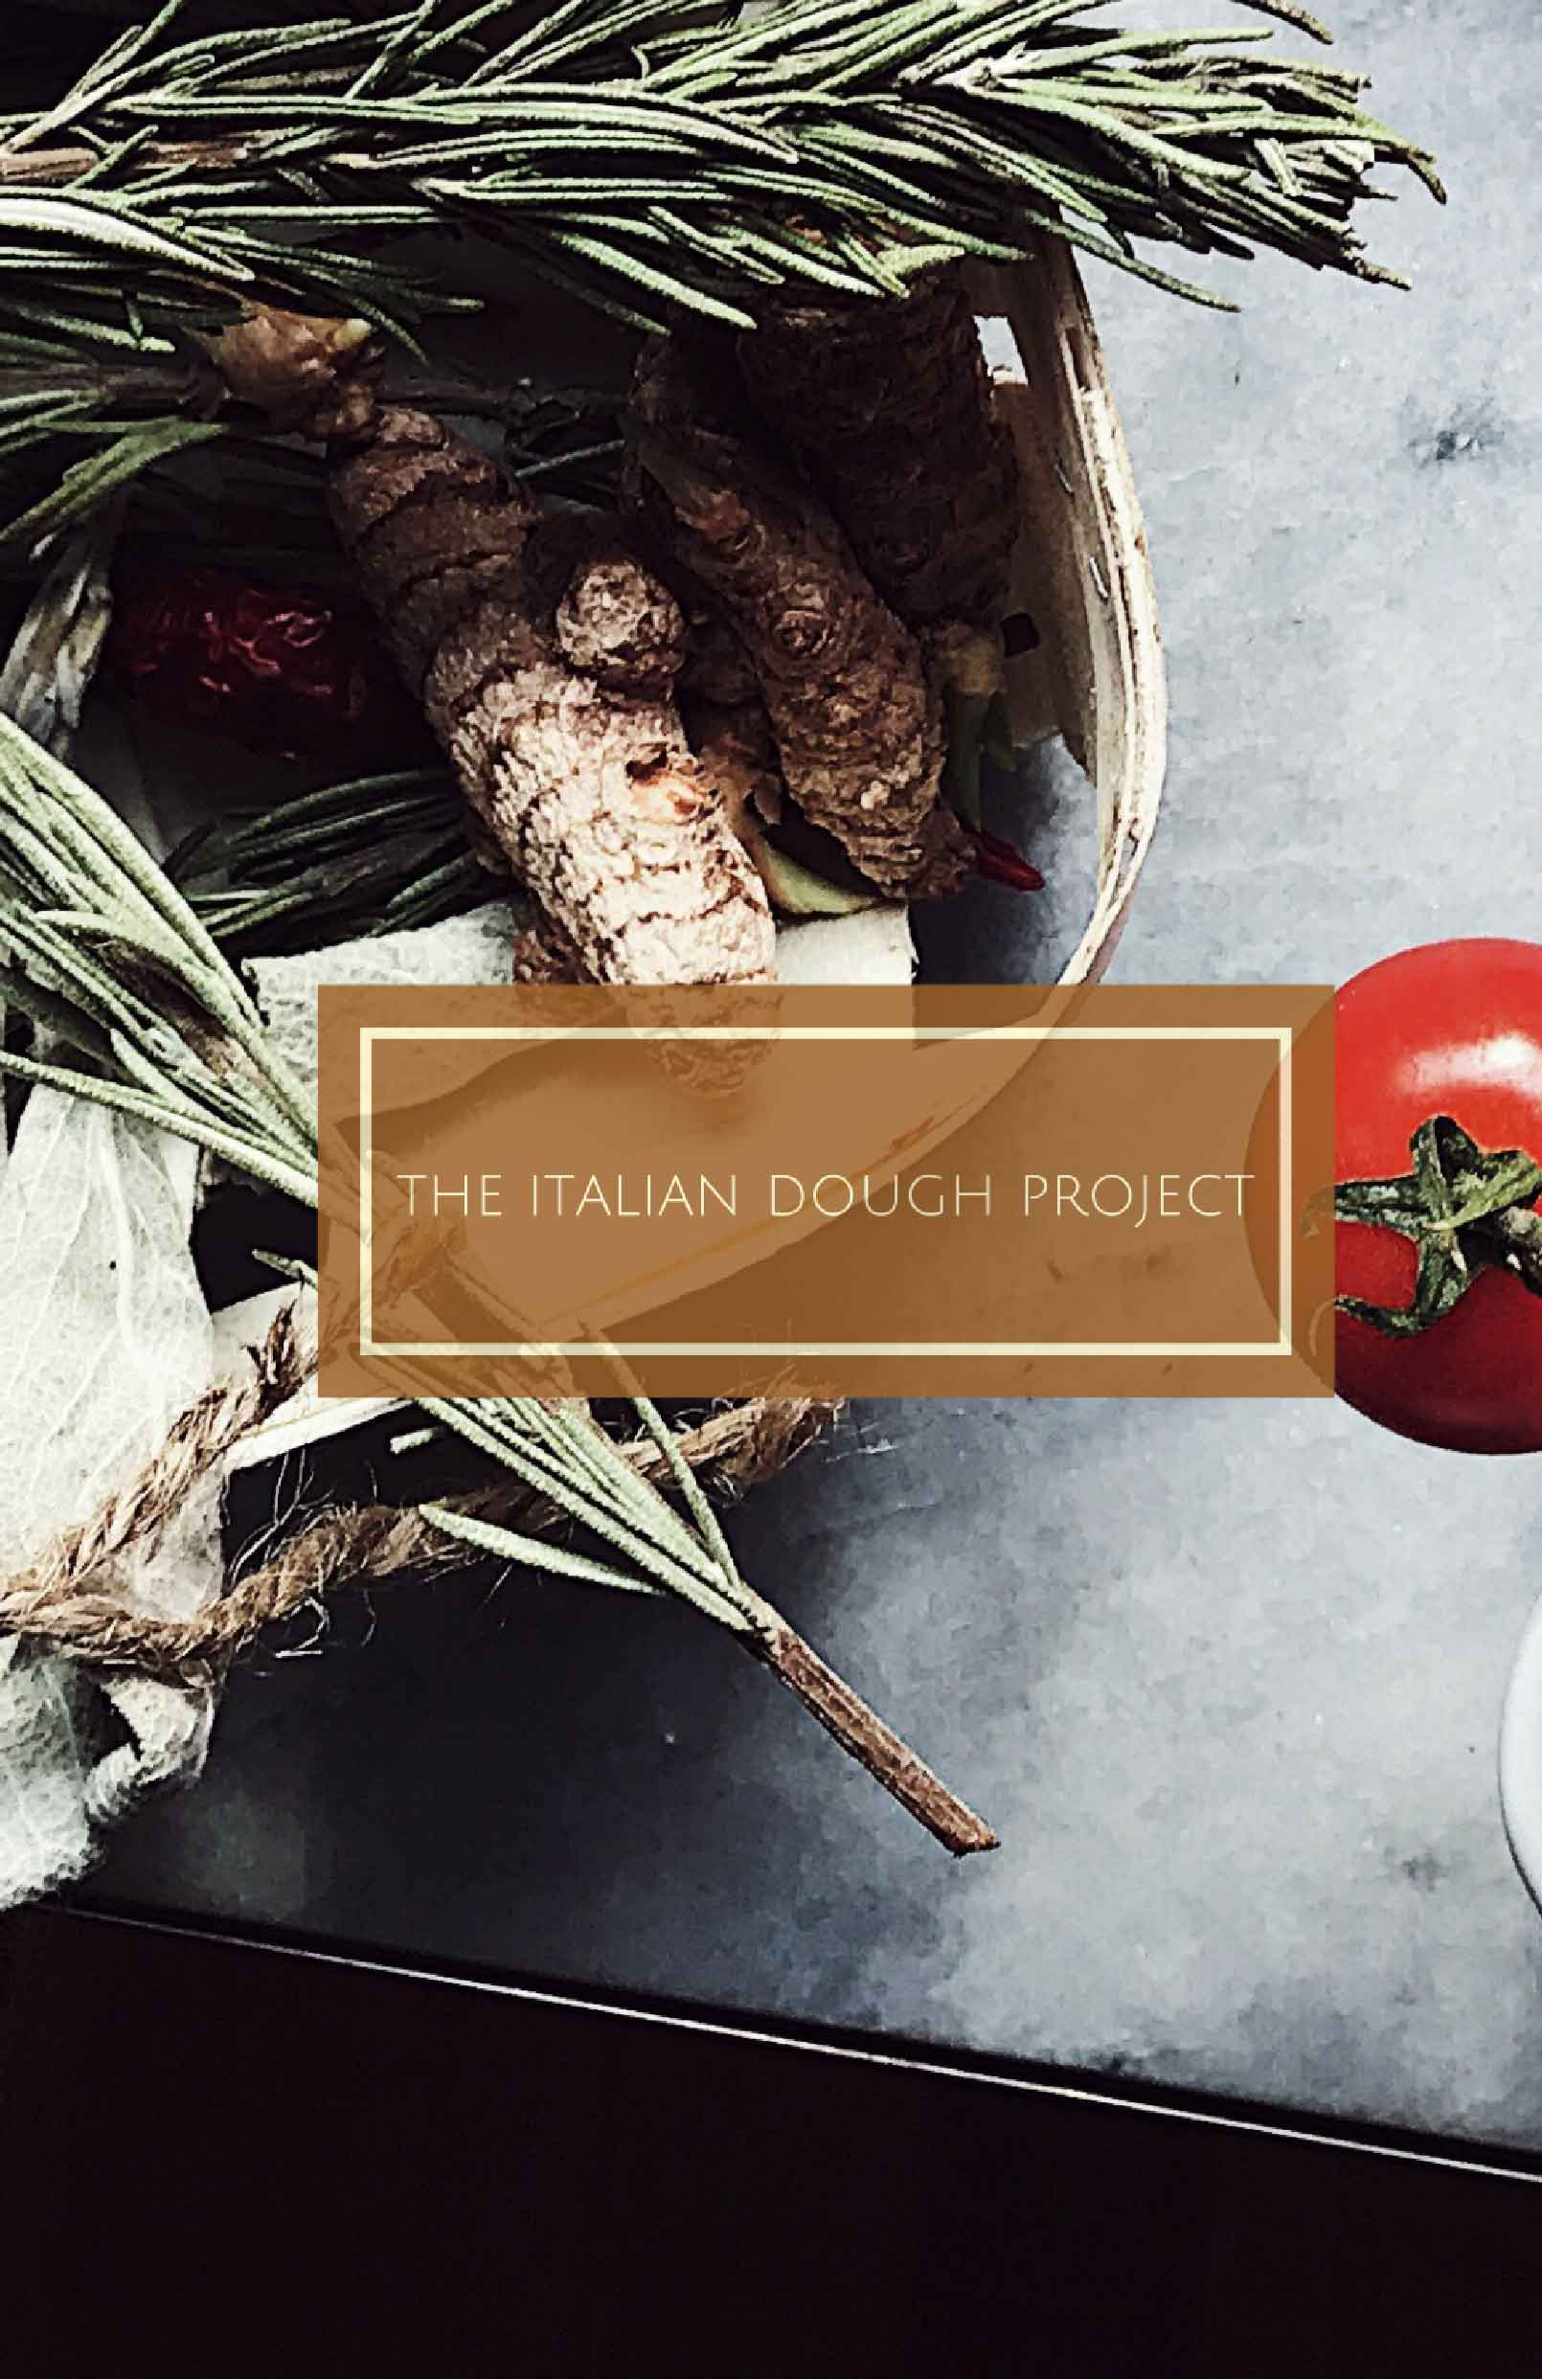 the Italian dough project